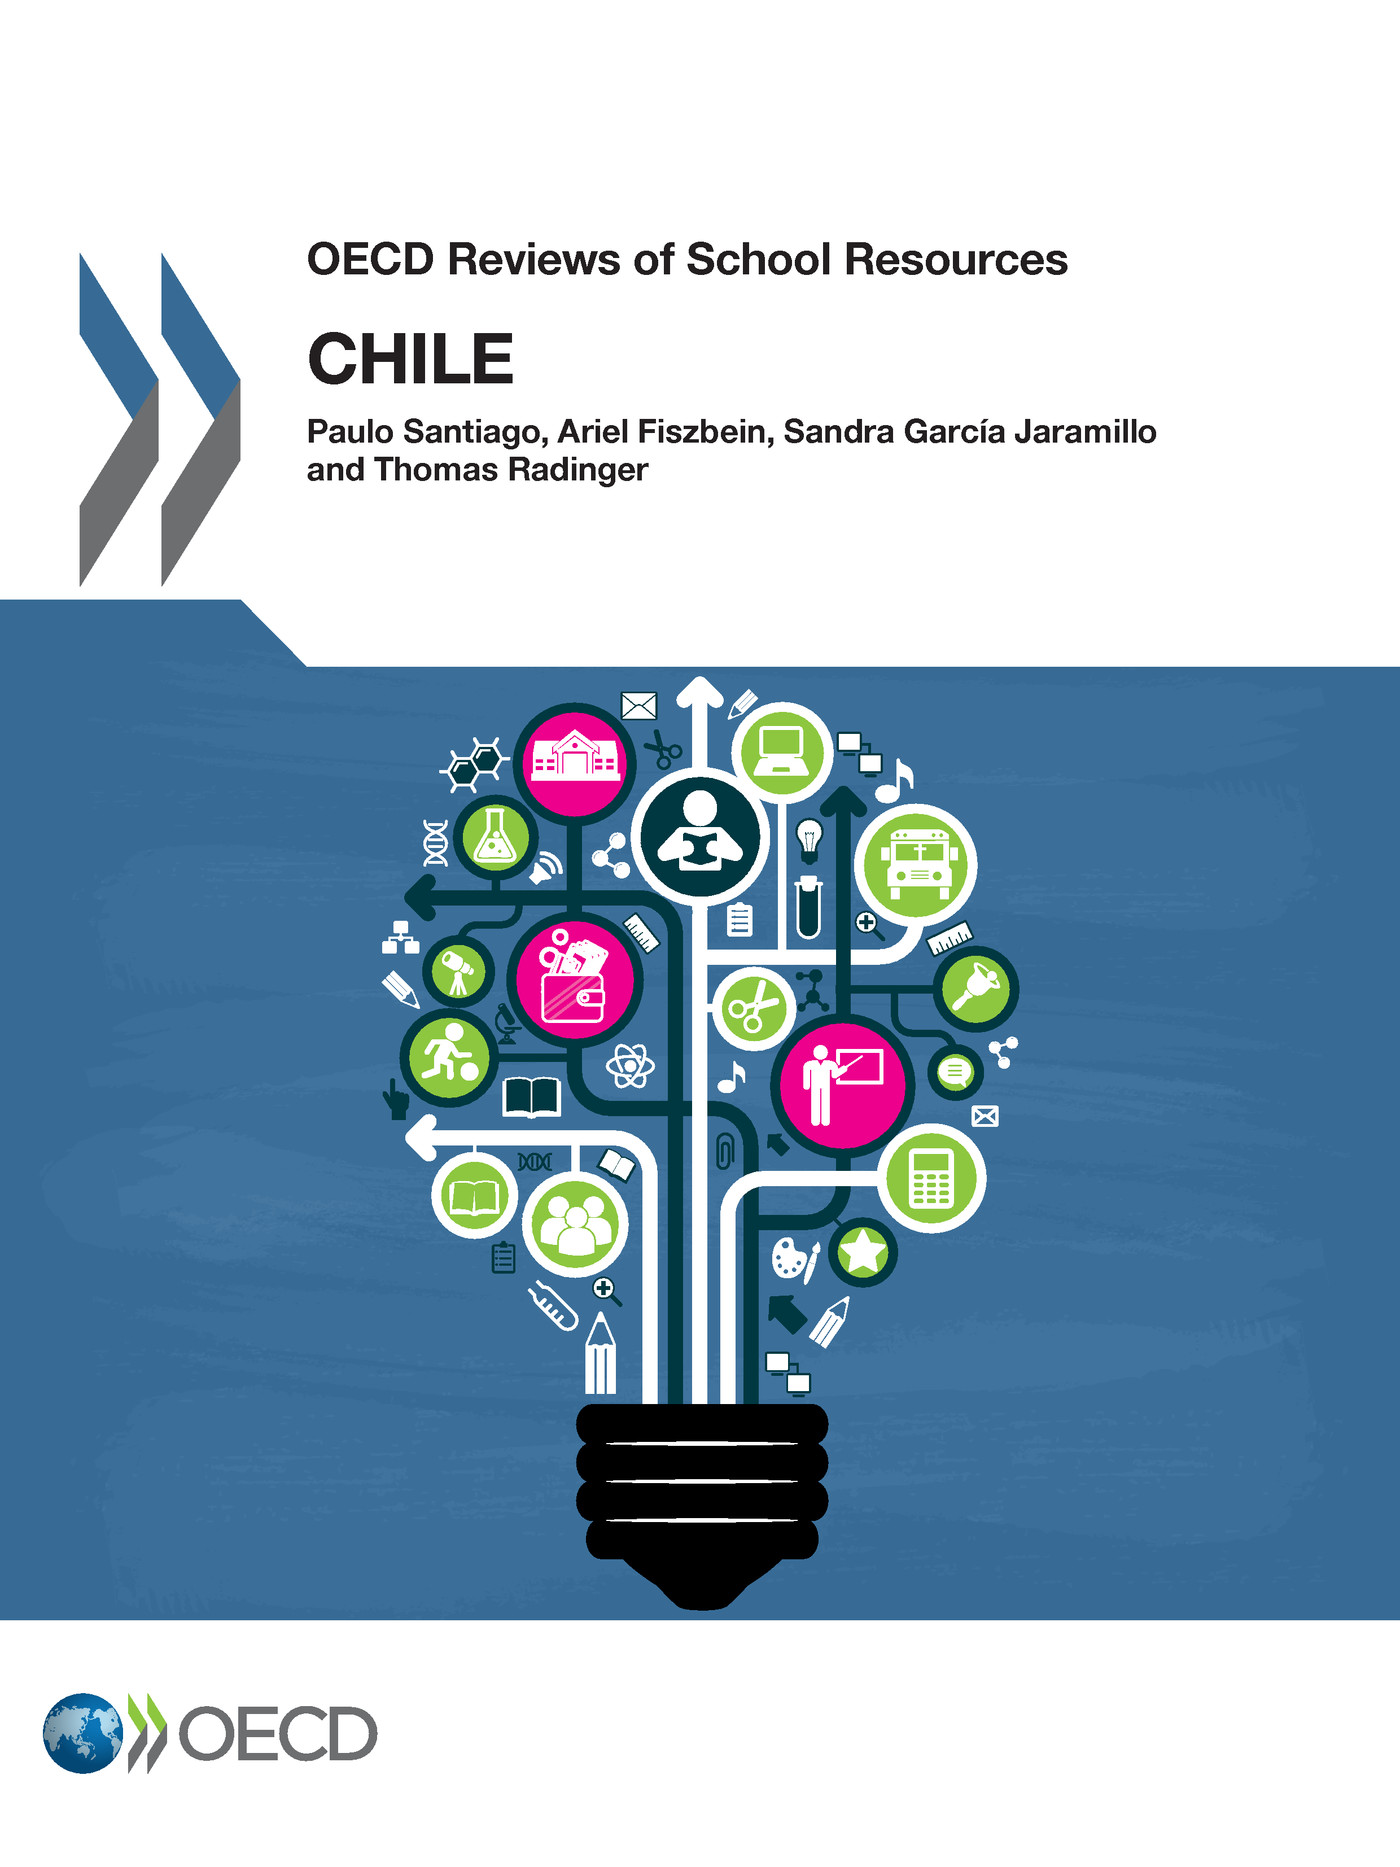 OECD Reviews of School Resources: Chile 2017 De  Collectif - OCDE / OECD